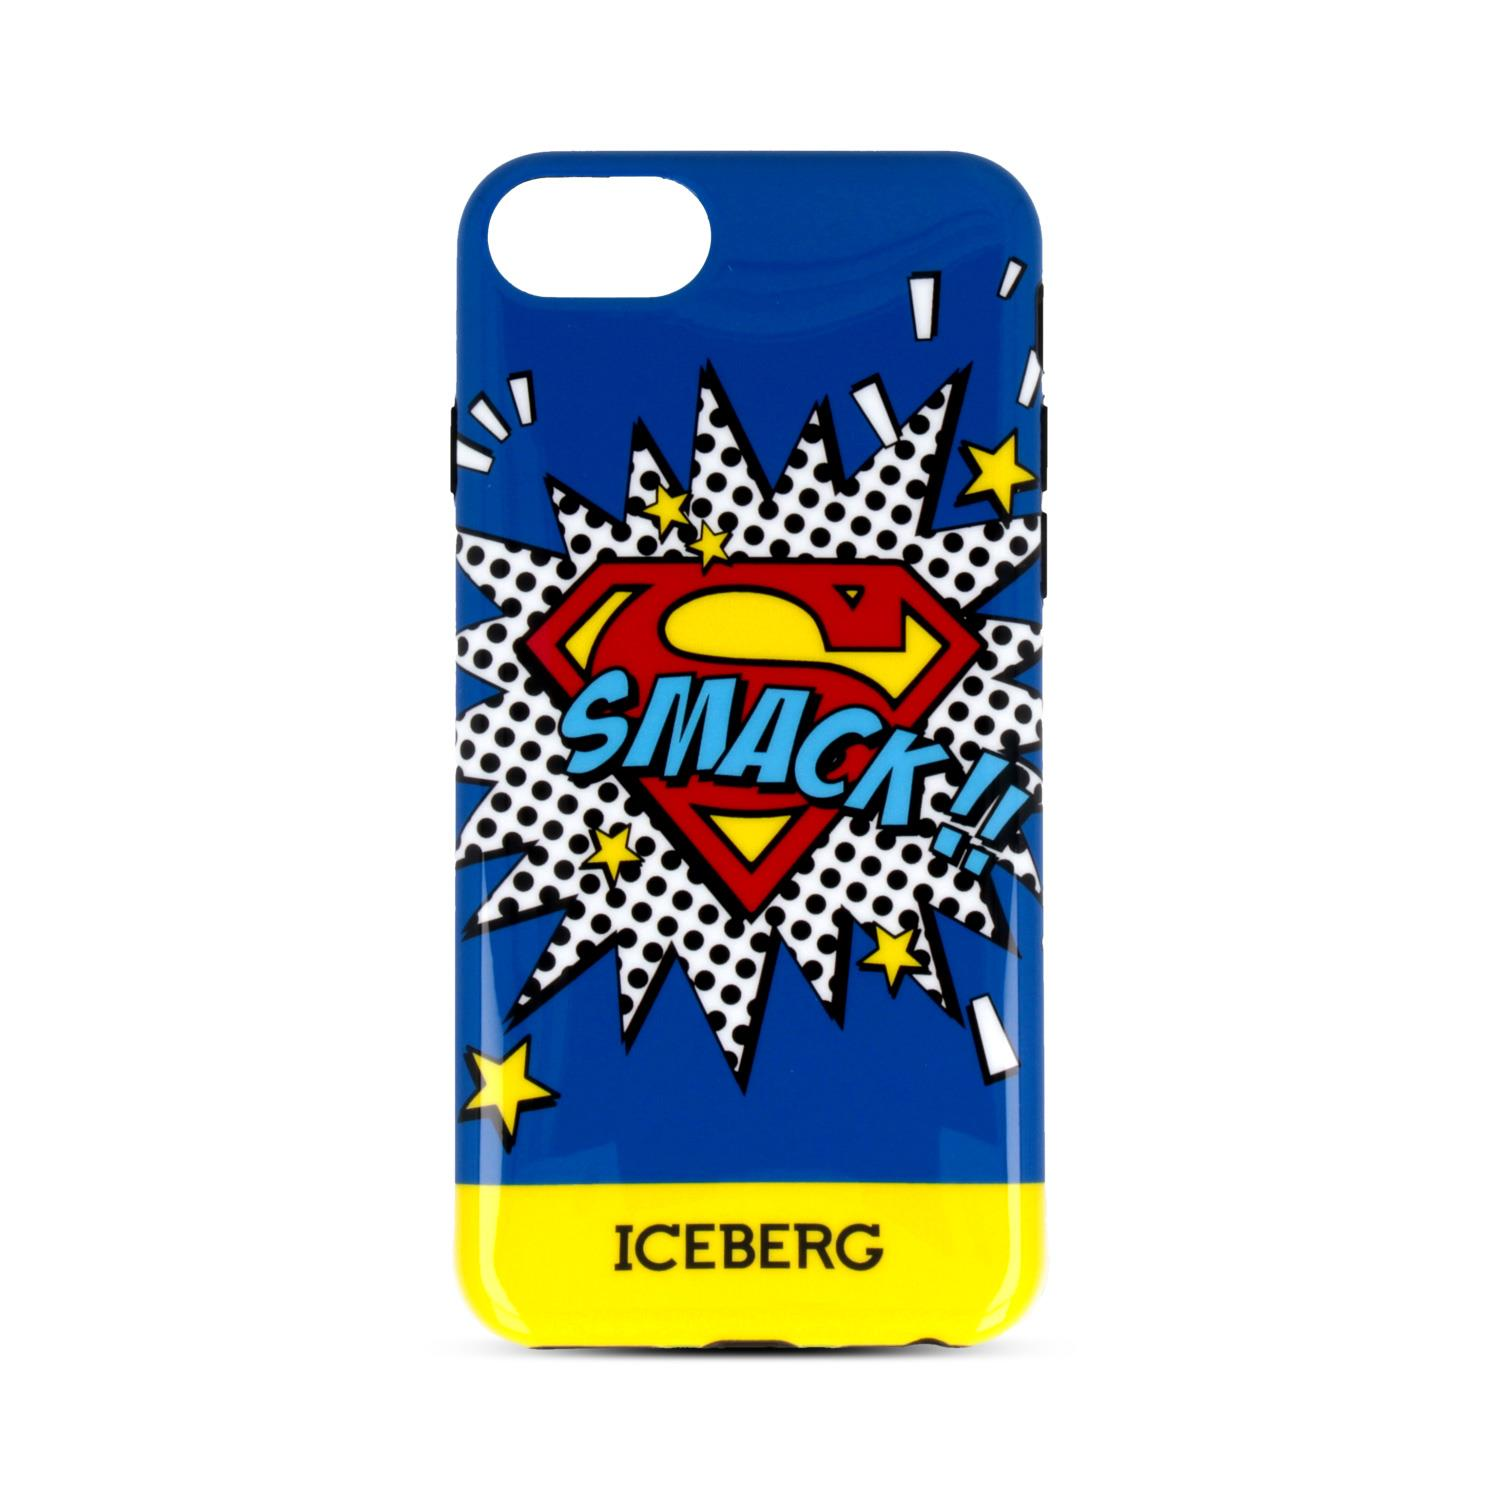 ICEBERG CUSTODIA ICEBERG SUPERMAN SMACK PER IPHONE 6/6S/7